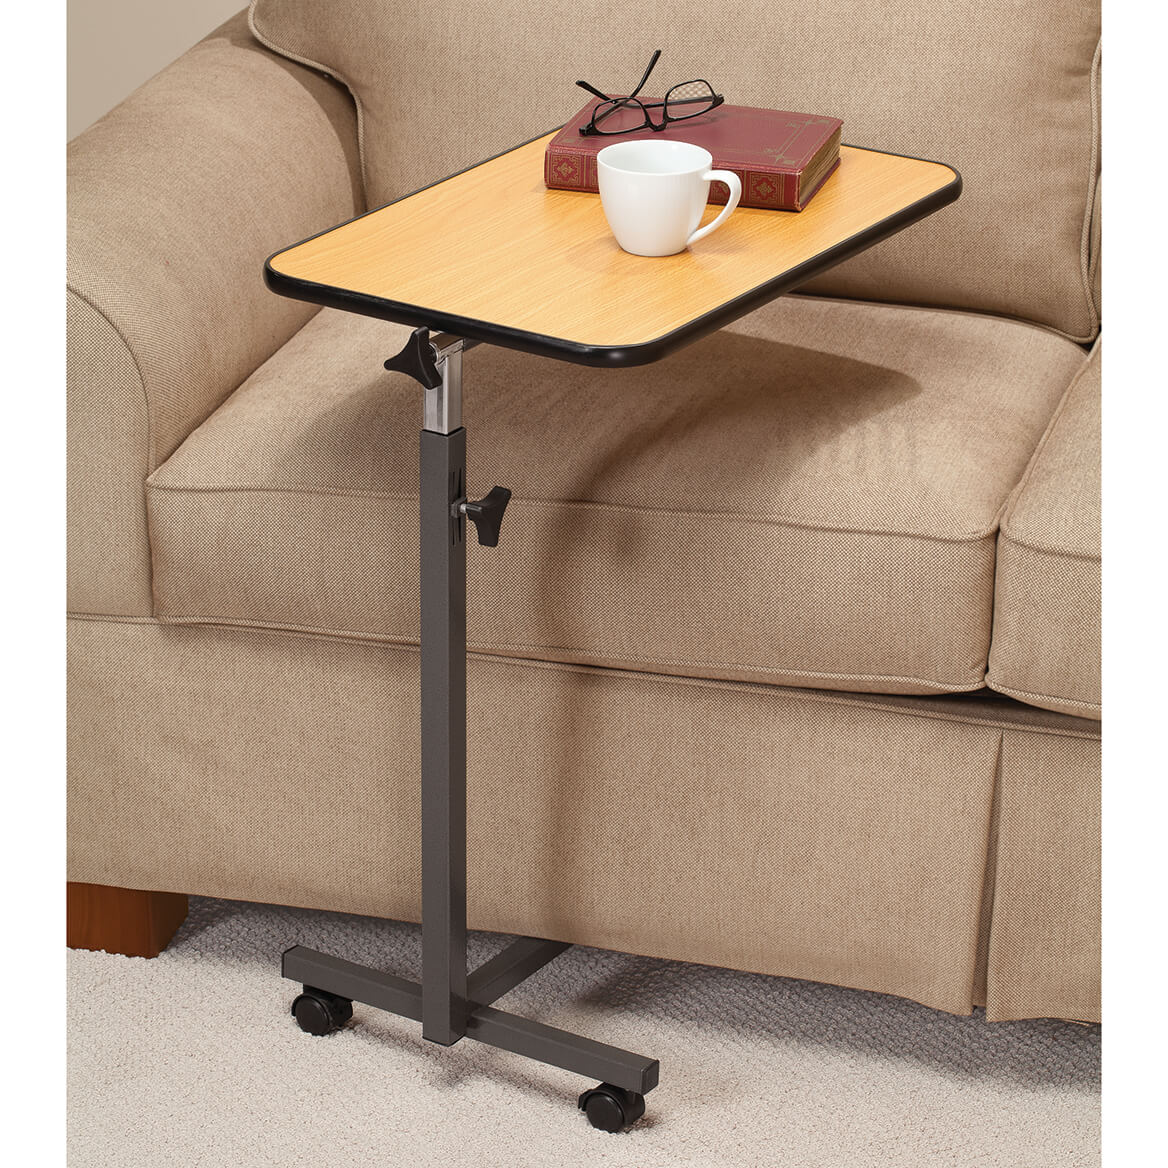 Rolling Tray Table-347640